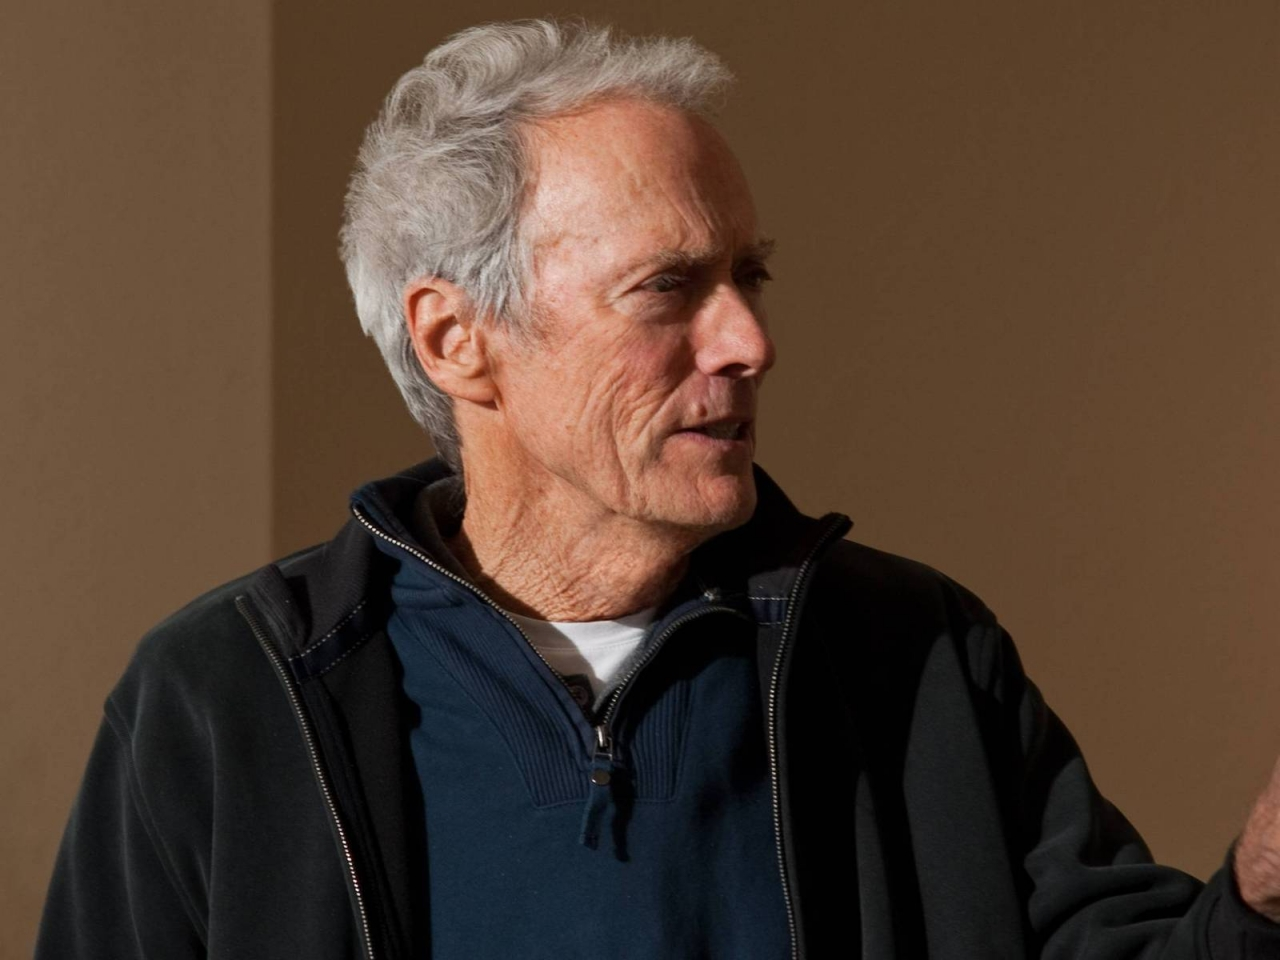 Clint Eastwood Close-Up for 1280 x 960 resolution